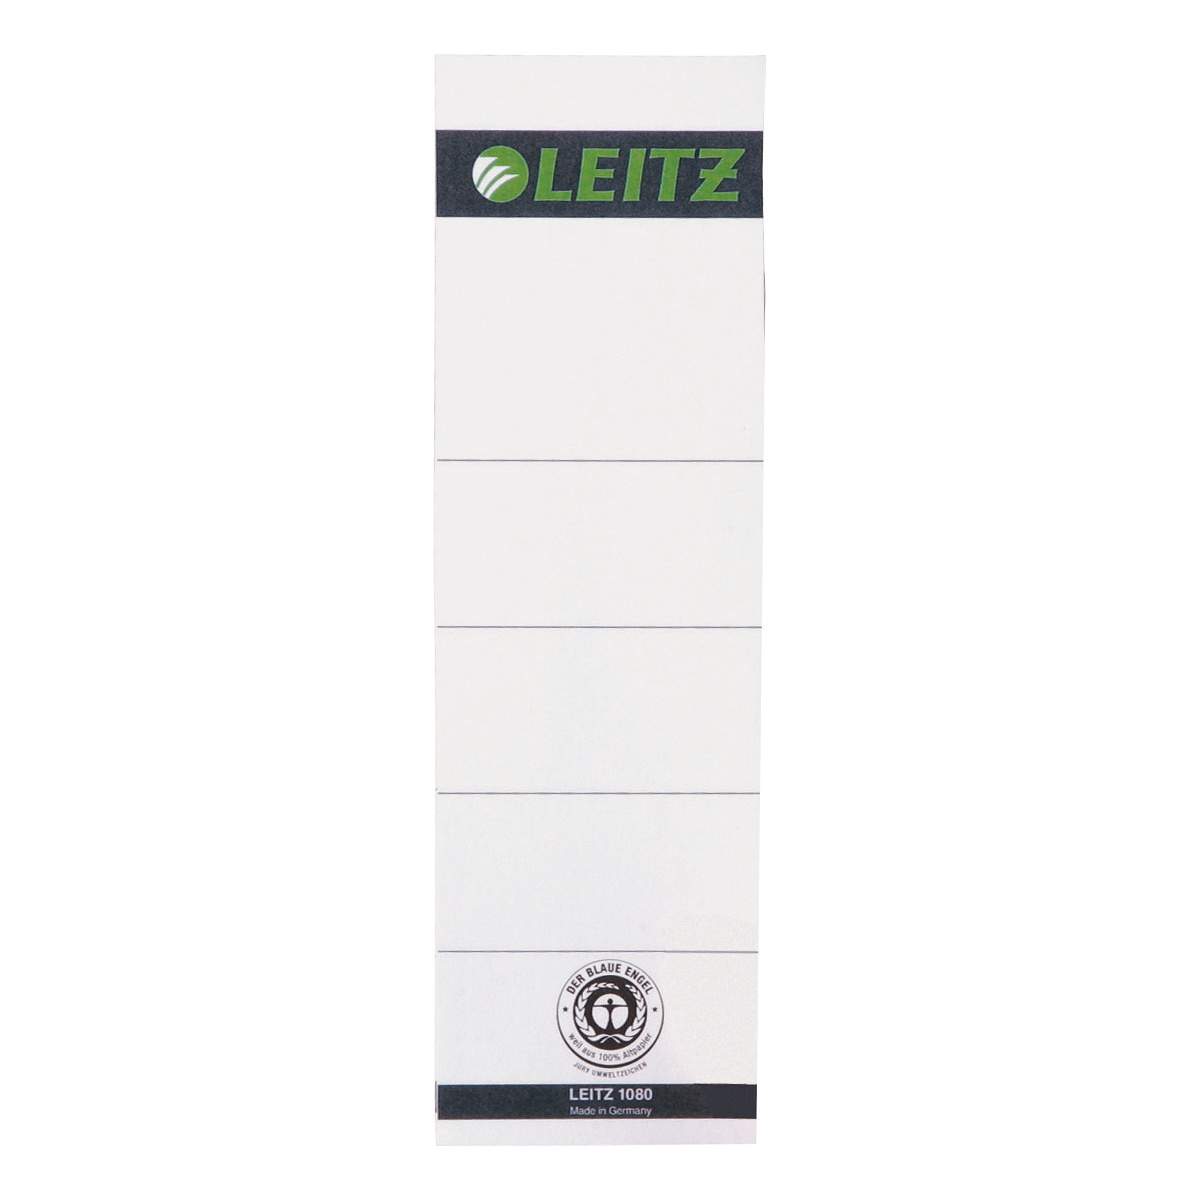 Leitz Replacement Spine Labels for Standard Board Files Self Adhesive Ref 1642-00-85 Pack 10